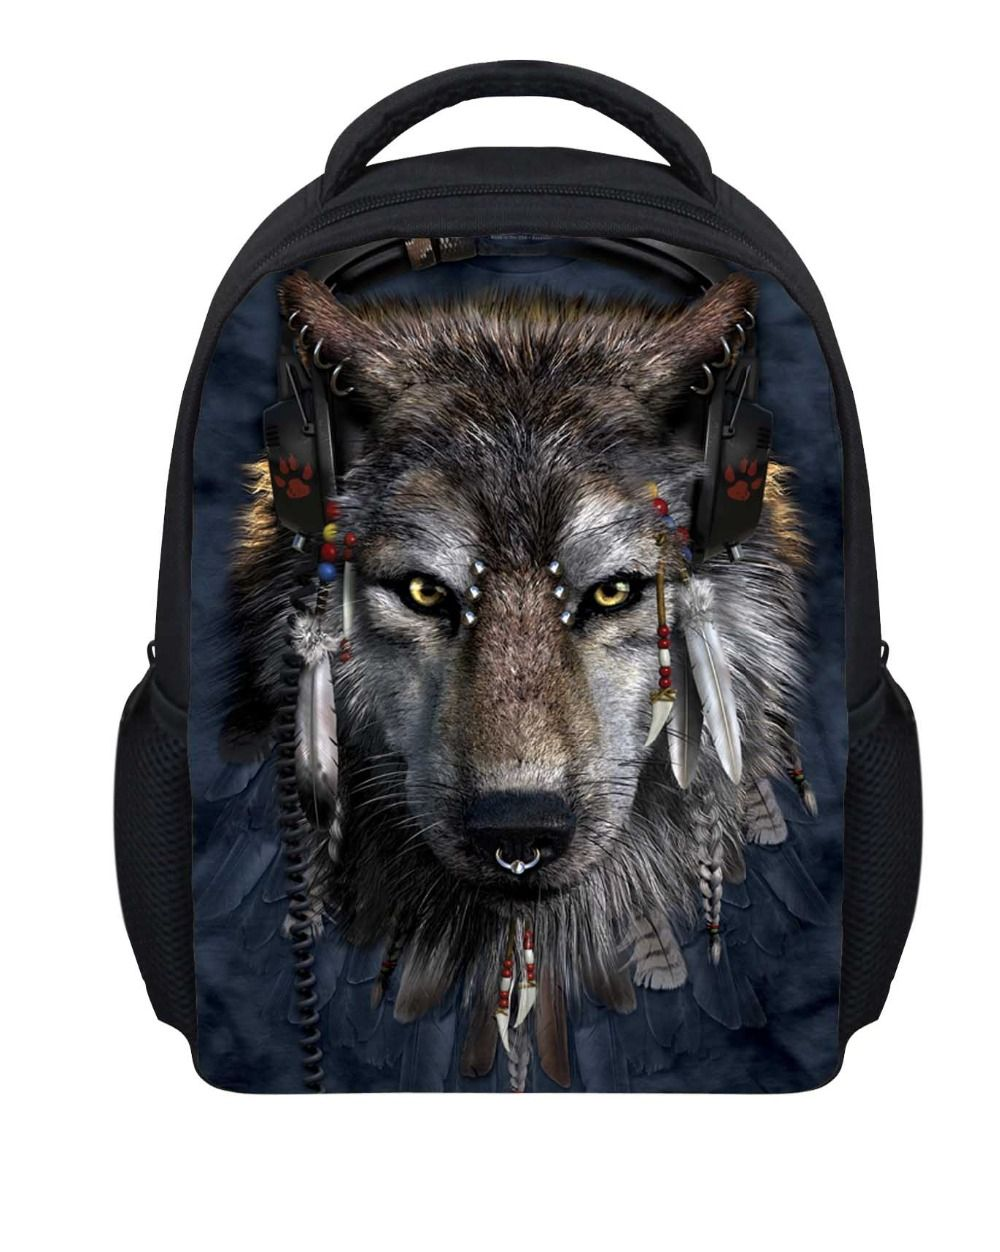 2fb9c27bfd0 Cool Wolf Printing Childrens School Bags for Boys,3D Animal ...